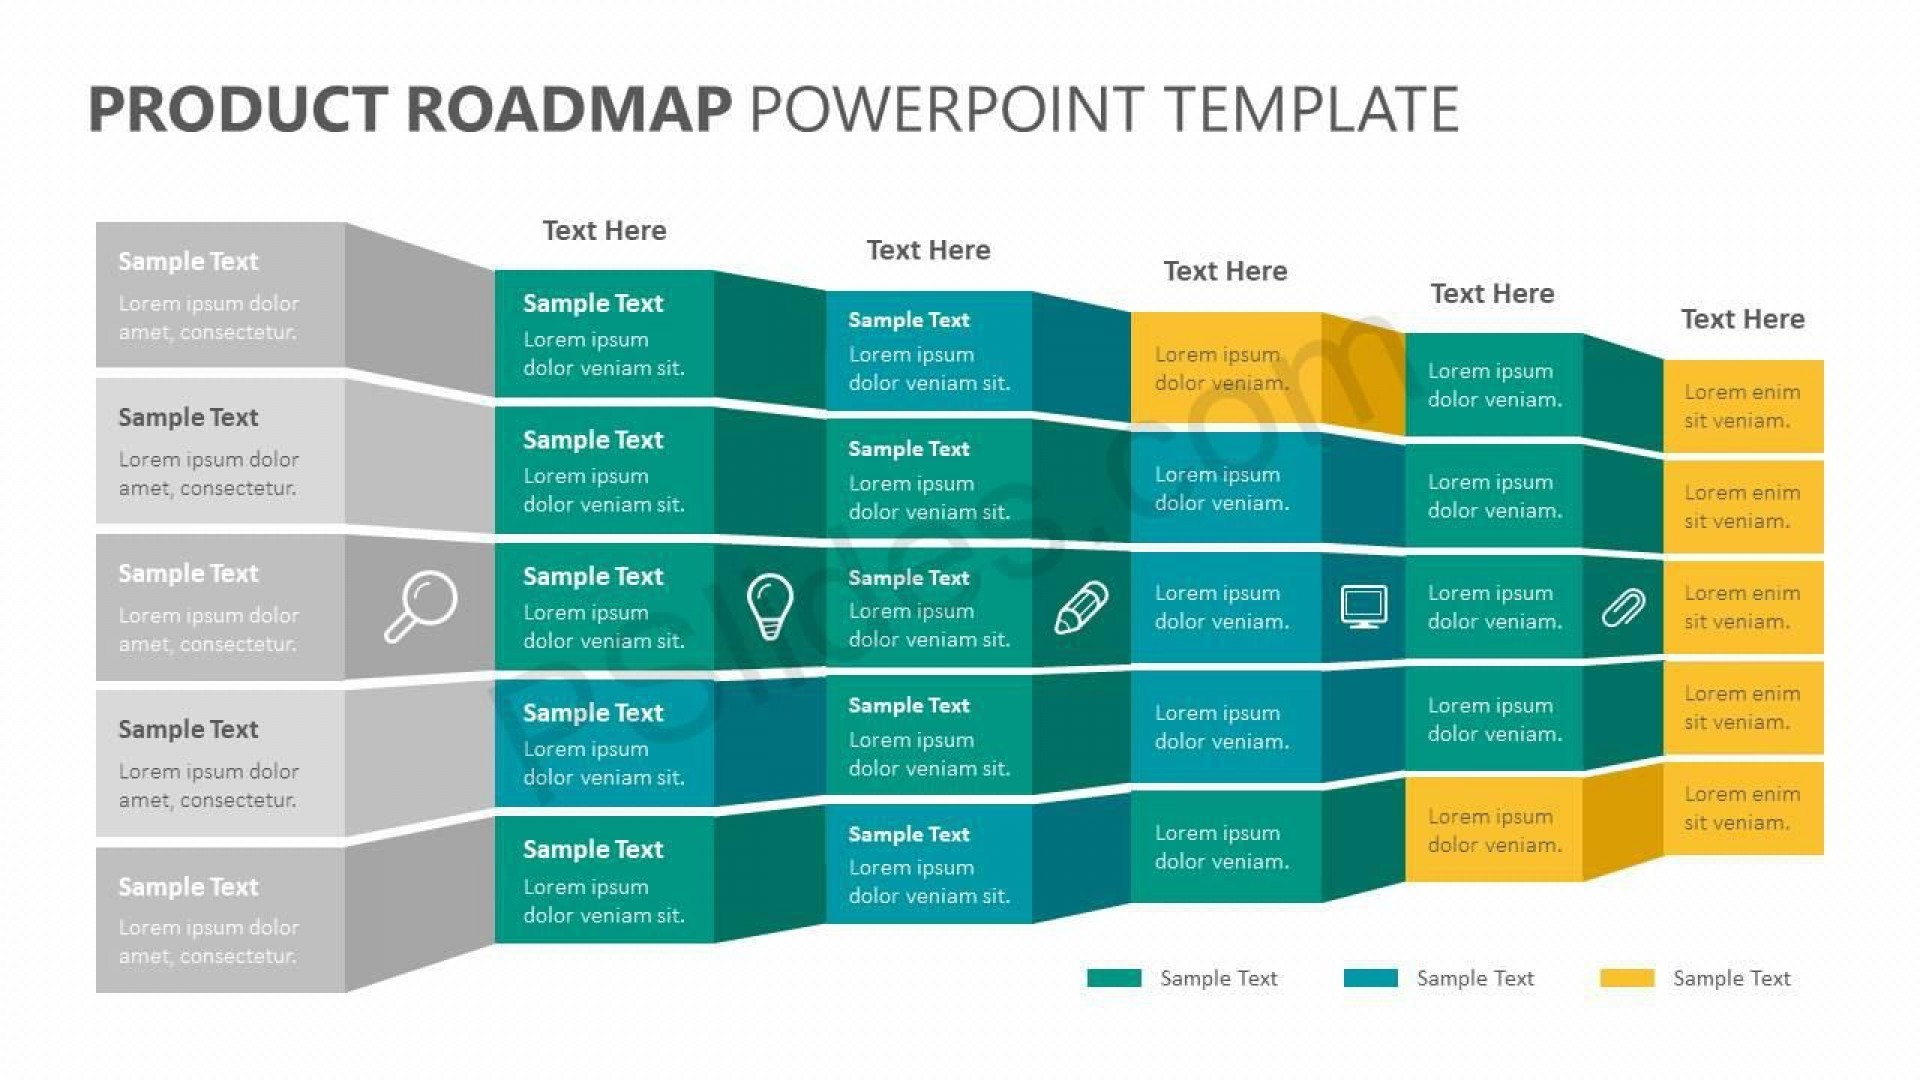 005 Shocking Road Map Template Powerpoint Highest Clarity  Roadmap Ppt Free Download Product1920